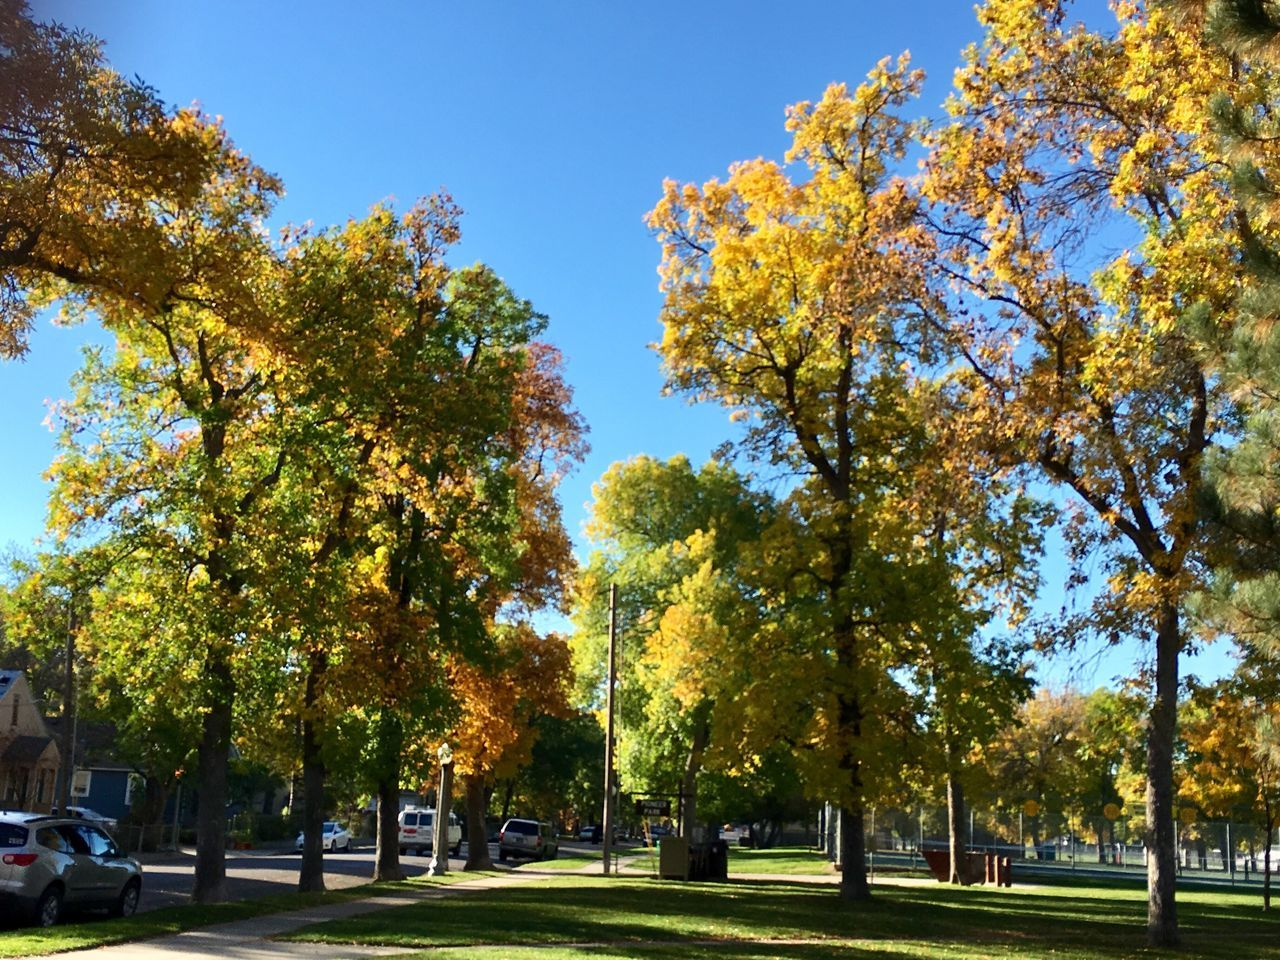 tree, autumn, leaf, nature, growth, change, day, beauty in nature, tranquility, park - man made space, outdoors, scenics, tranquil scene, sunlight, branch, no people, sky, clear sky